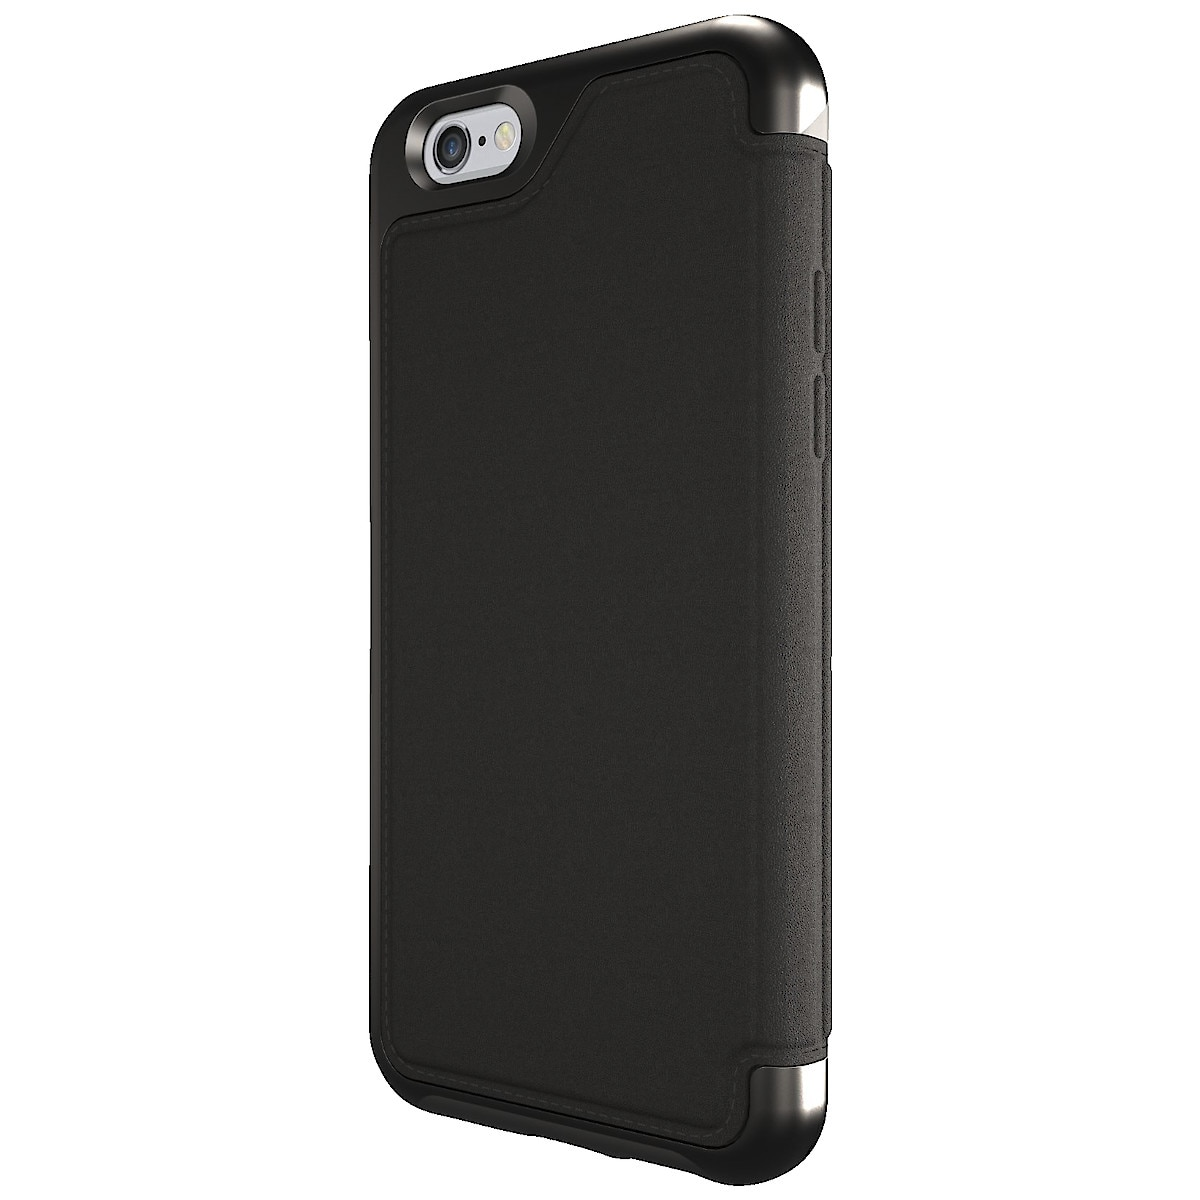 Otterbox Strada Protective Case for iPhone 6/6S